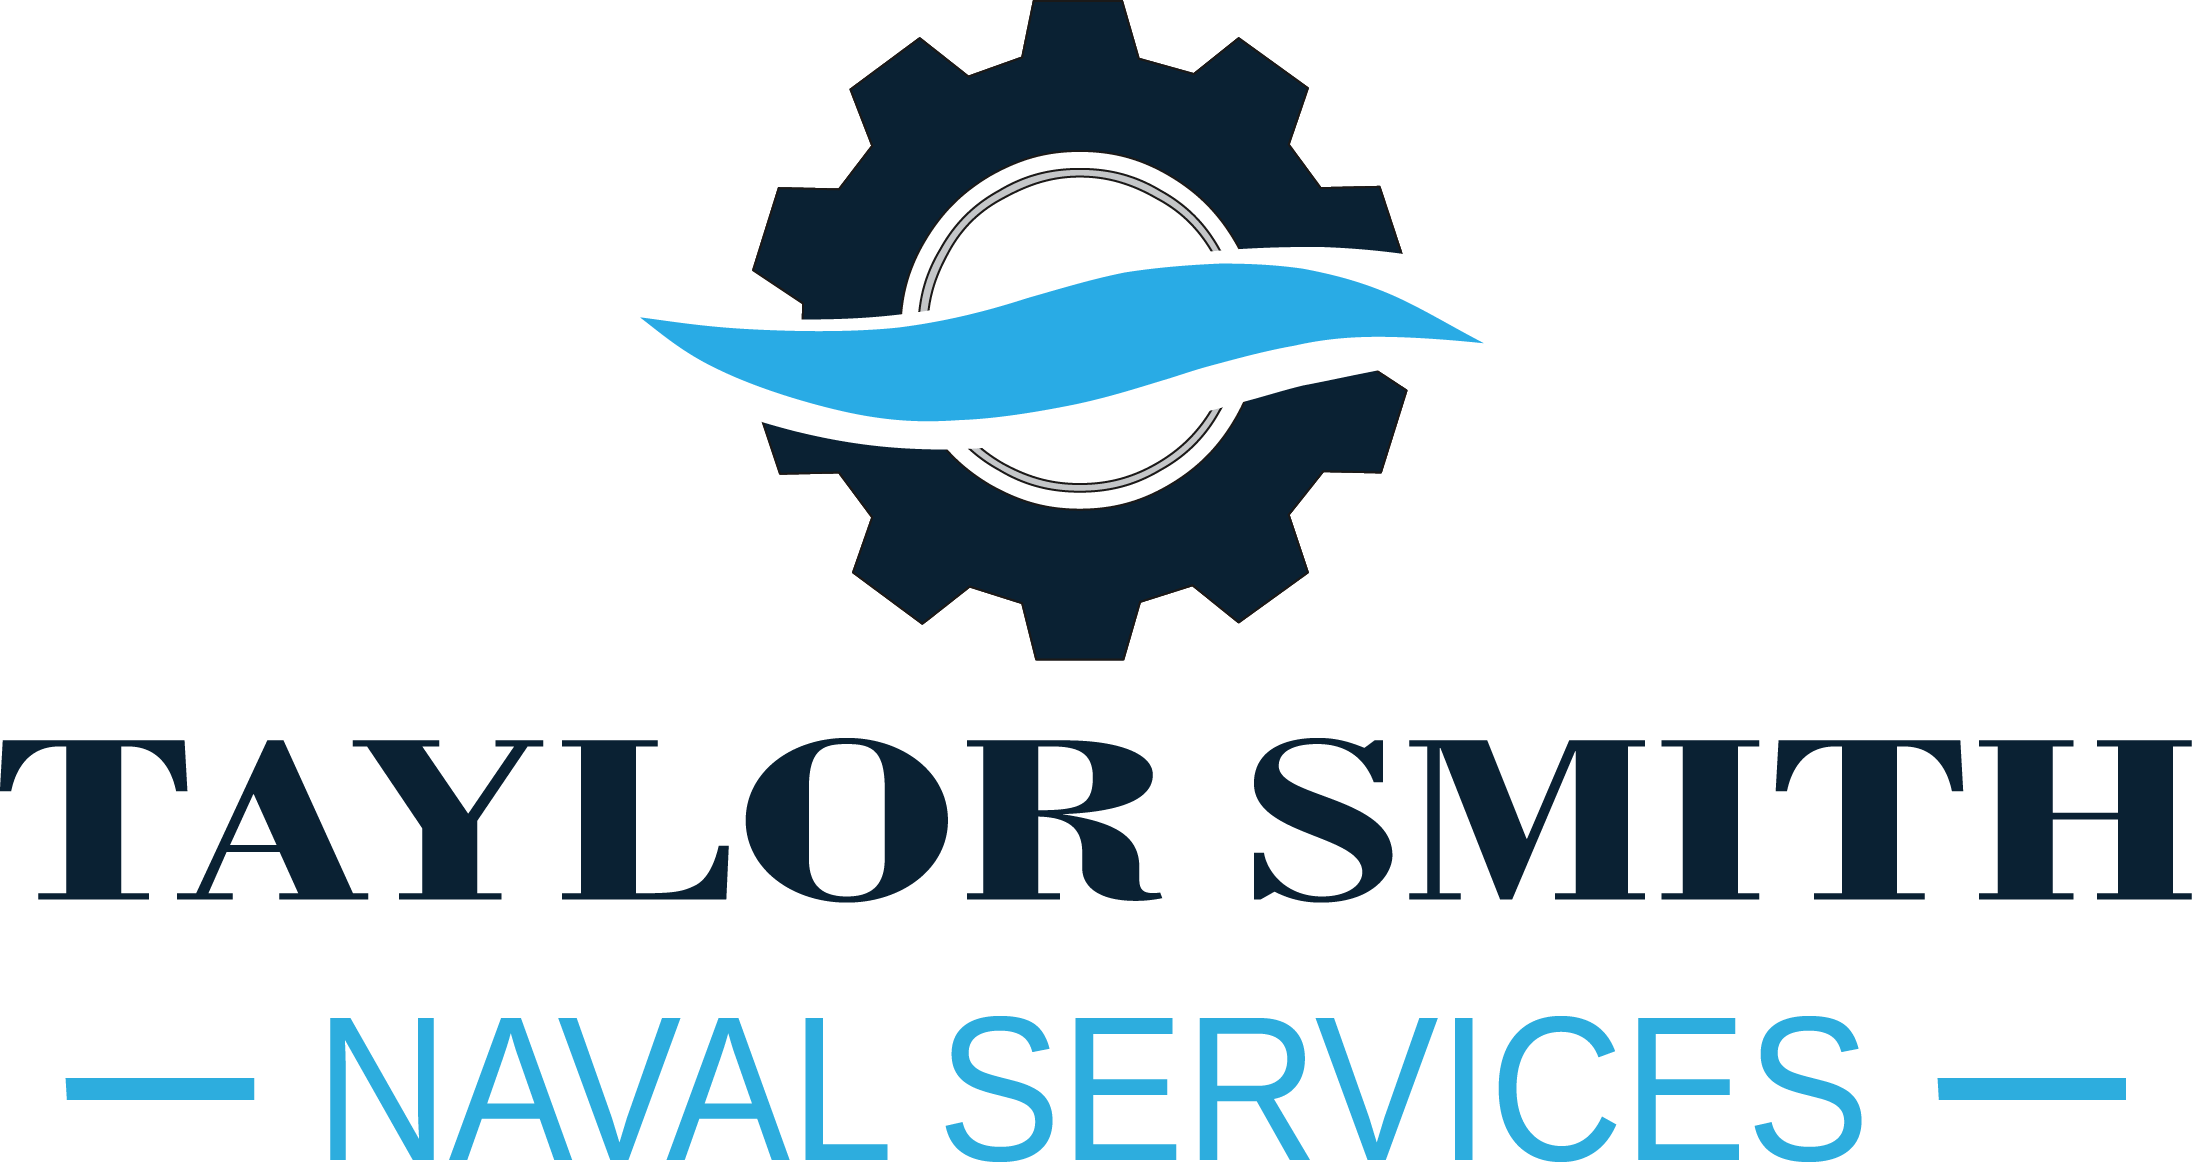 Introducing Taylor Smith Naval Services